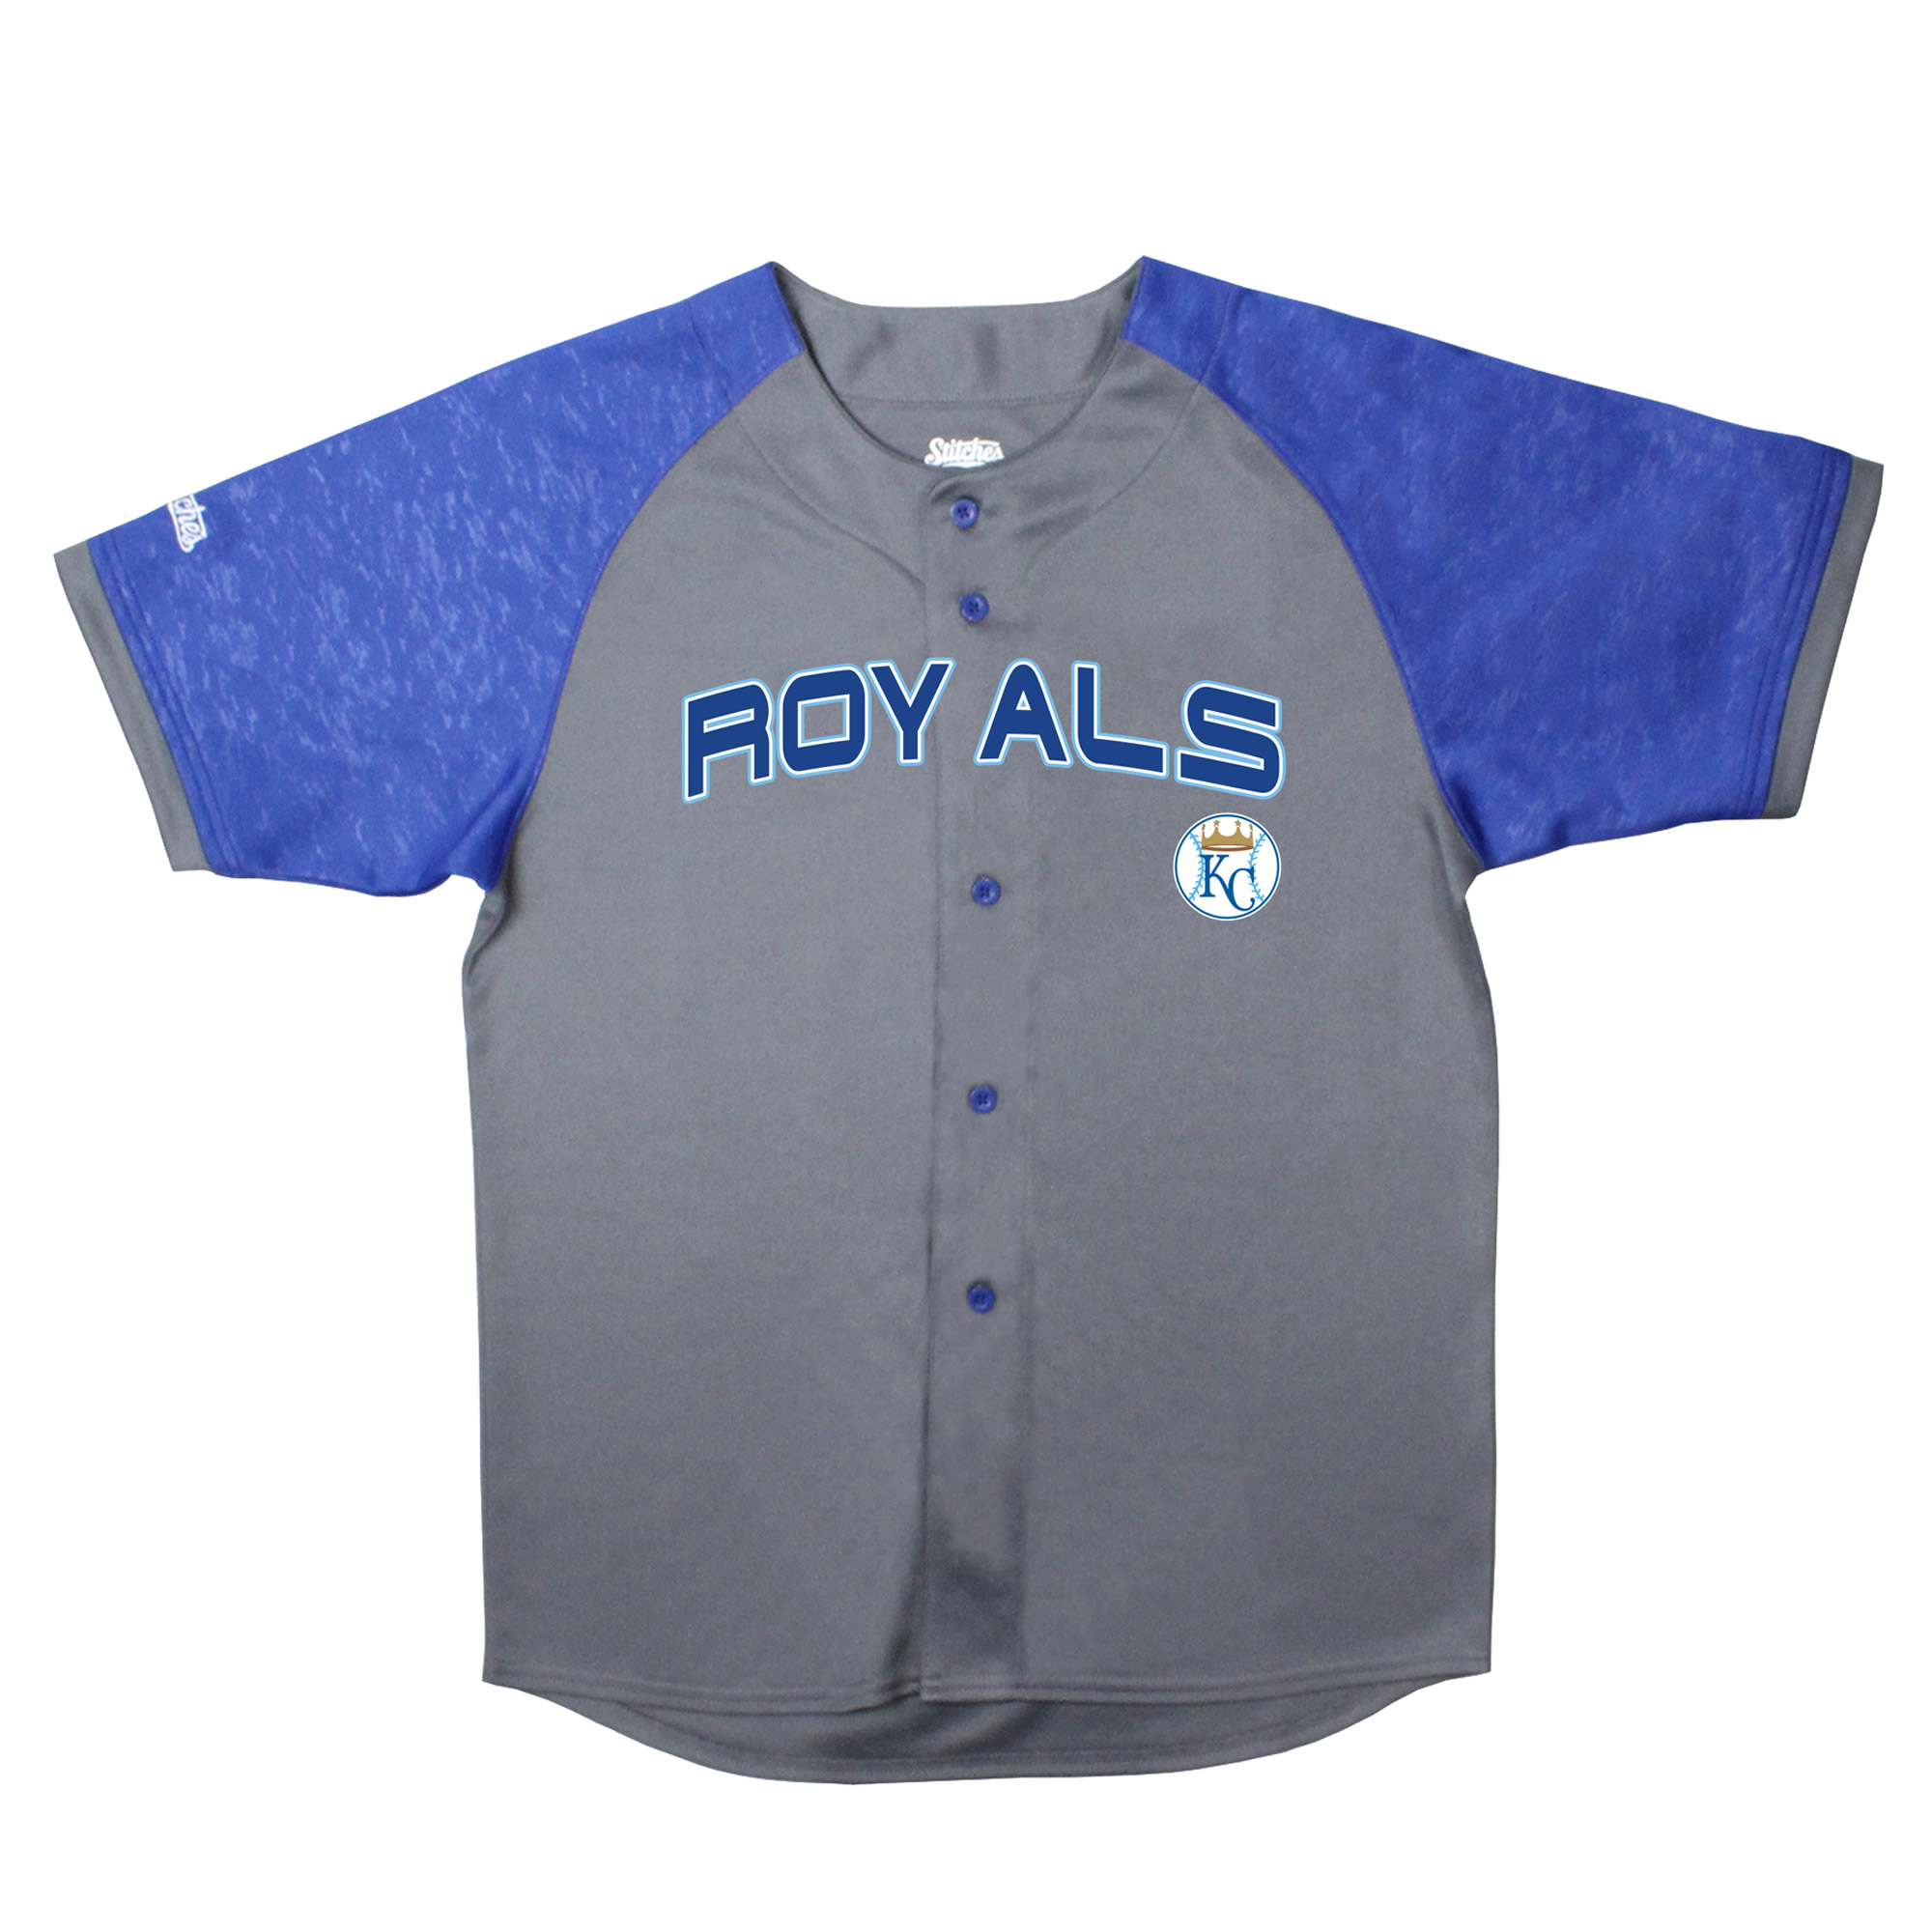 Kansas City Royals Stitches Youth Glitch Jersey - Charcoal/Royal